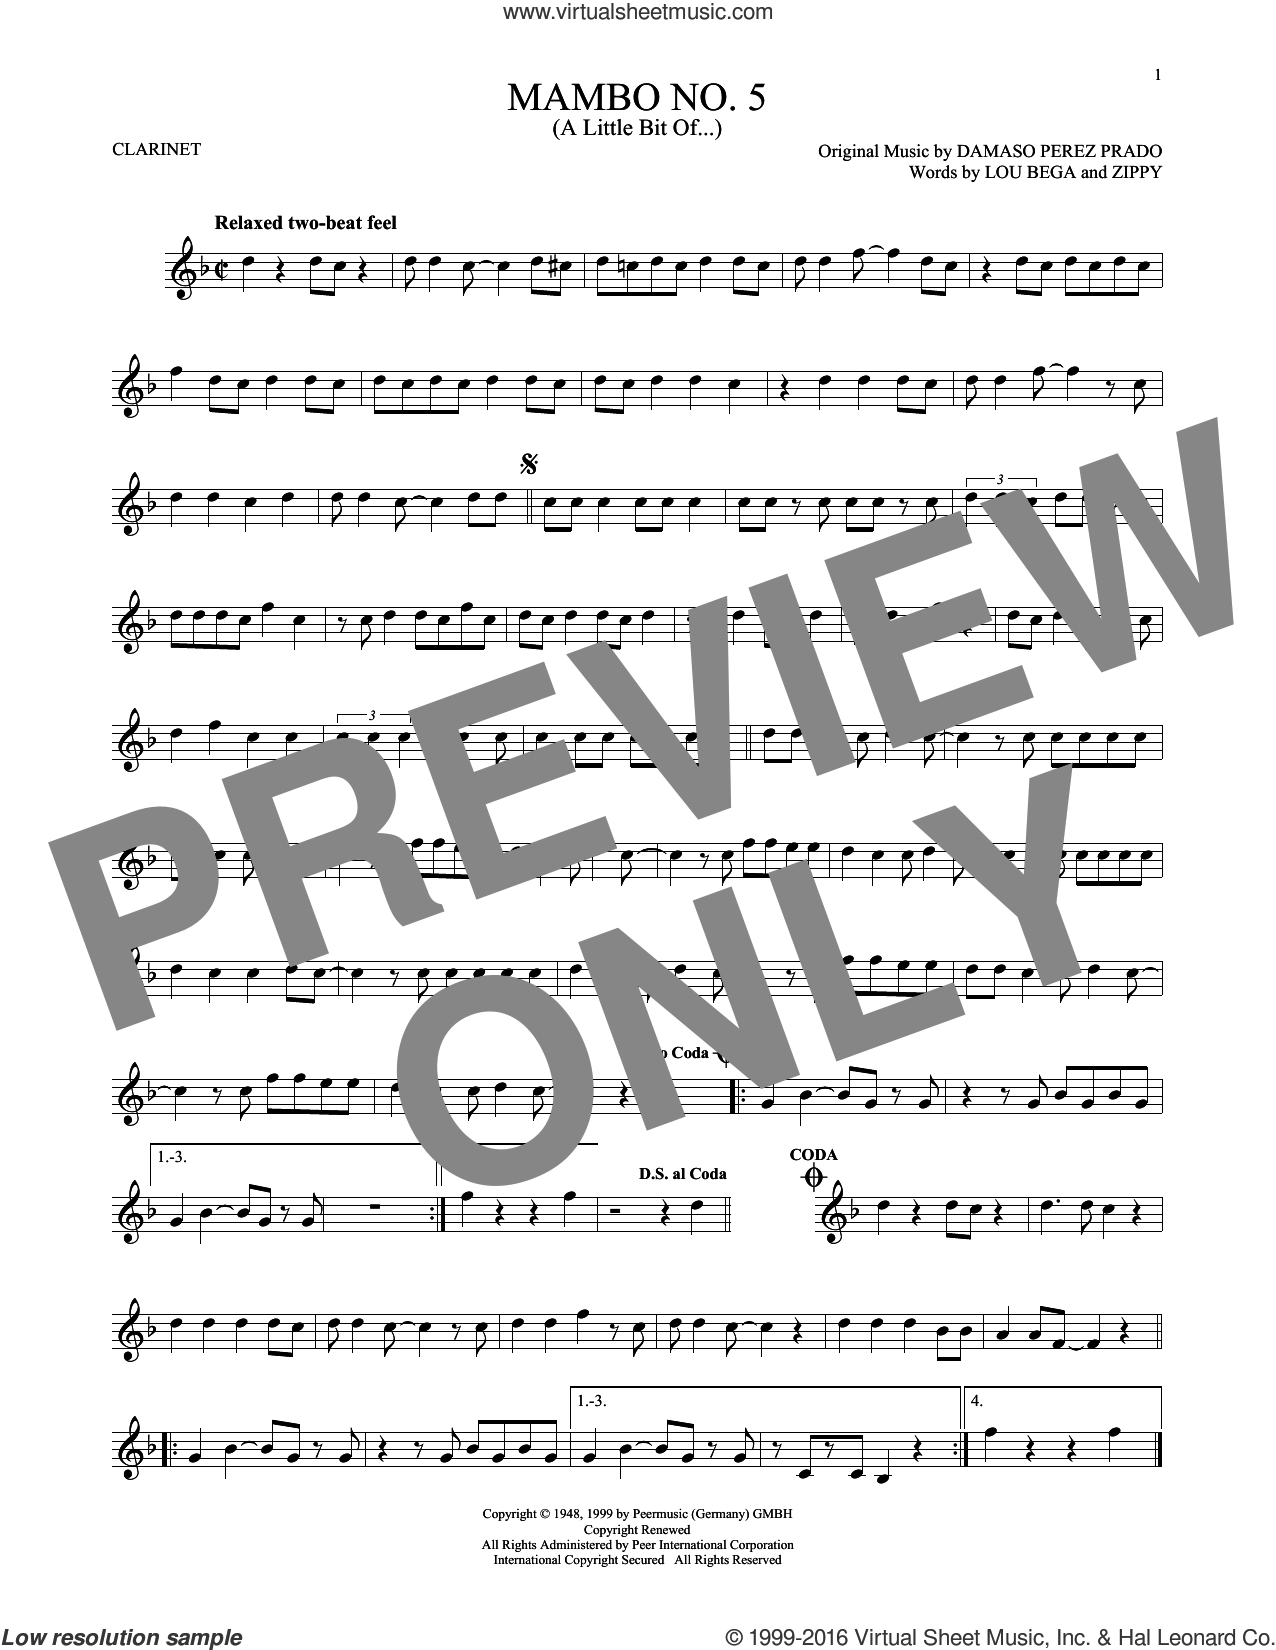 Mambo No. 5 (A Little Bit Of...) sheet music for clarinet solo by Lou Bega, Damaso Perez Prado and Zippy, intermediate skill level